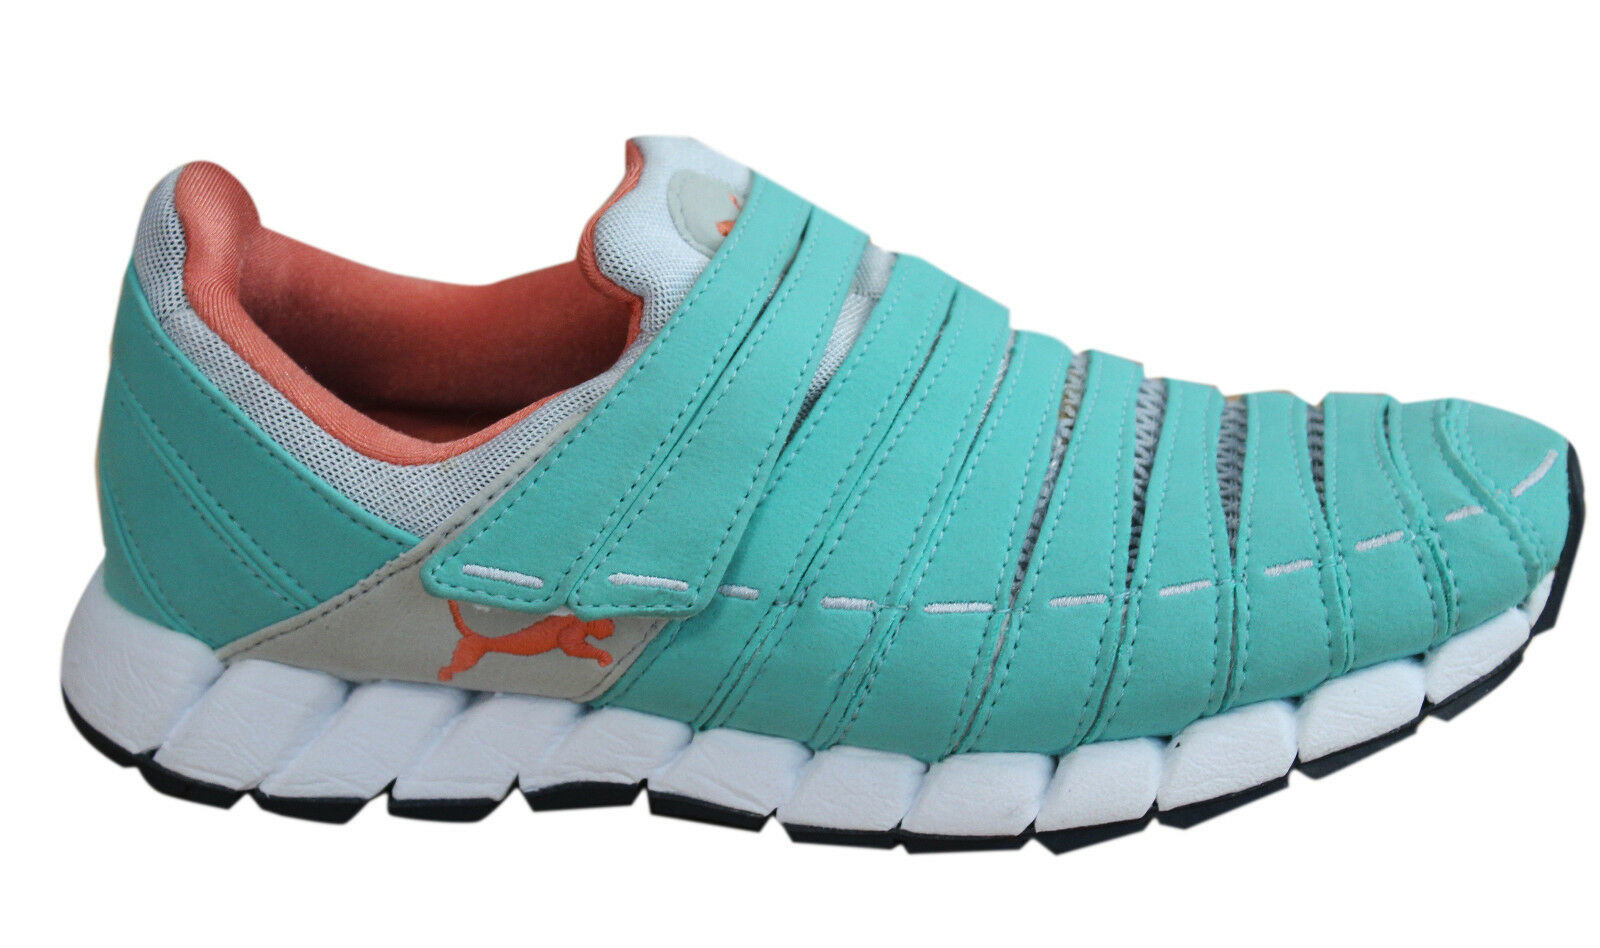 Puma Osu NM Wo Hommes Trainers Criss Cross Running Chaussures Mint Textile 185686 13 D35